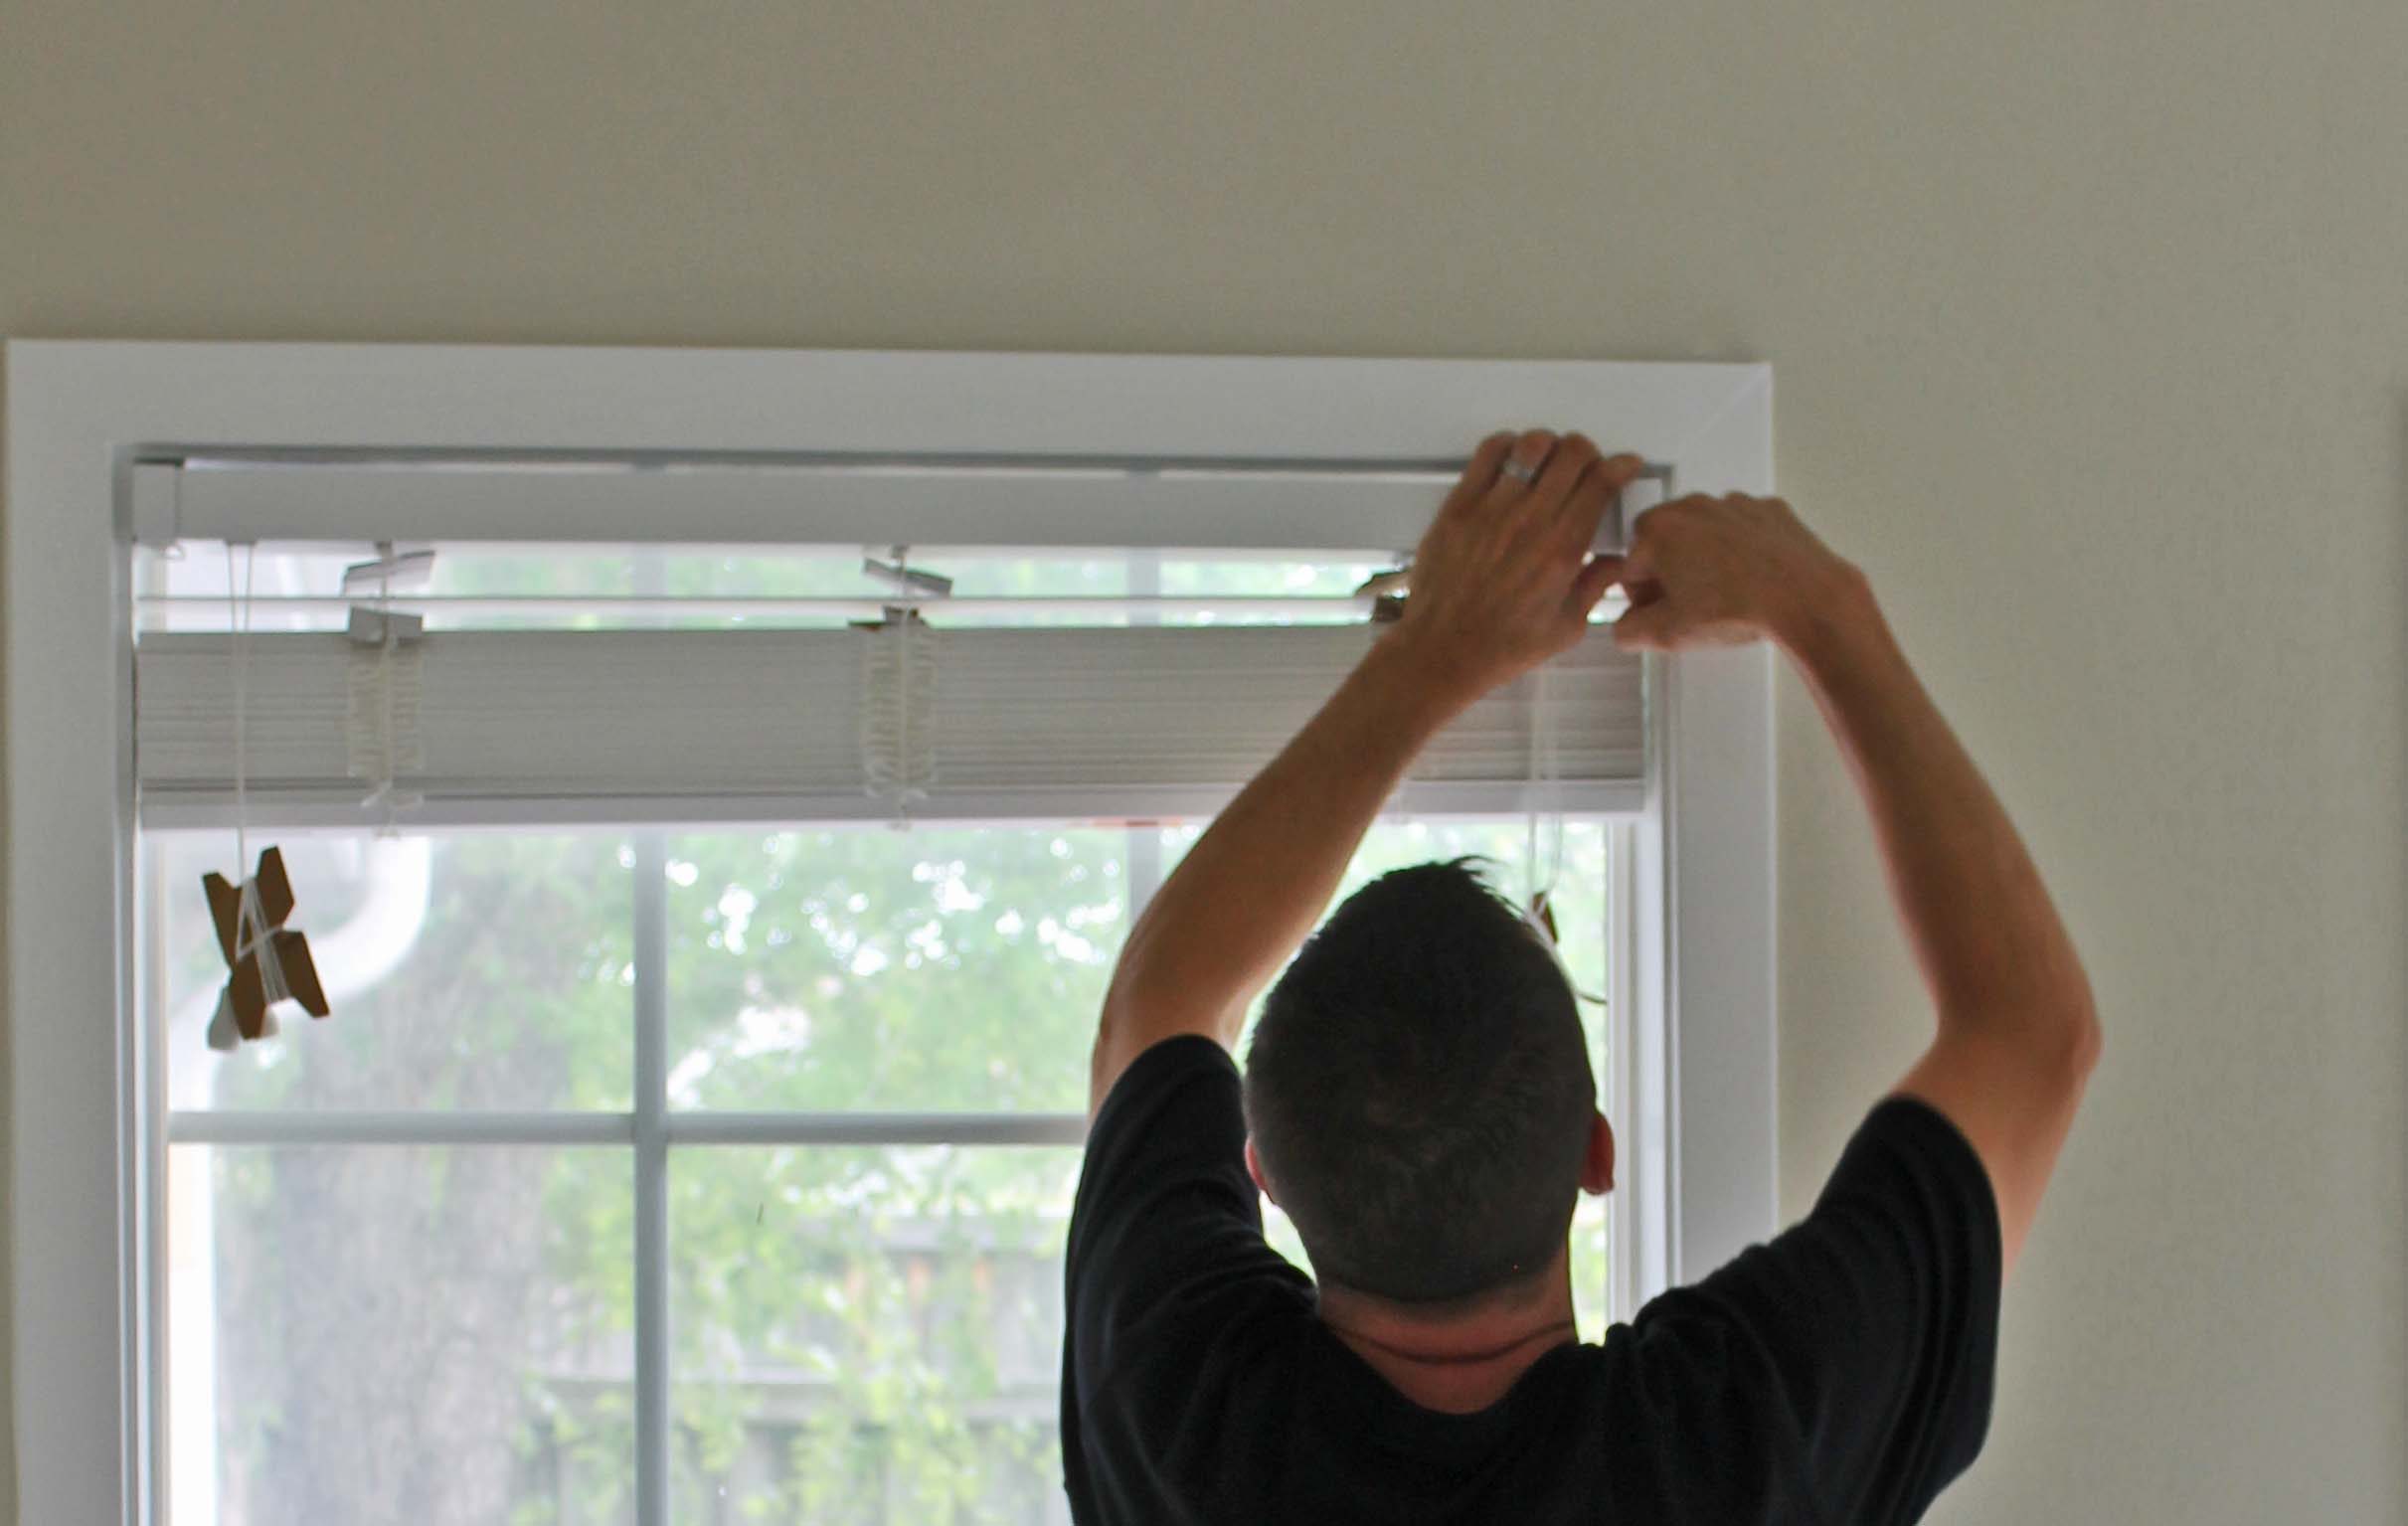 how to install blinds wood blinds 135a why have professional install my blinds wilmington nc